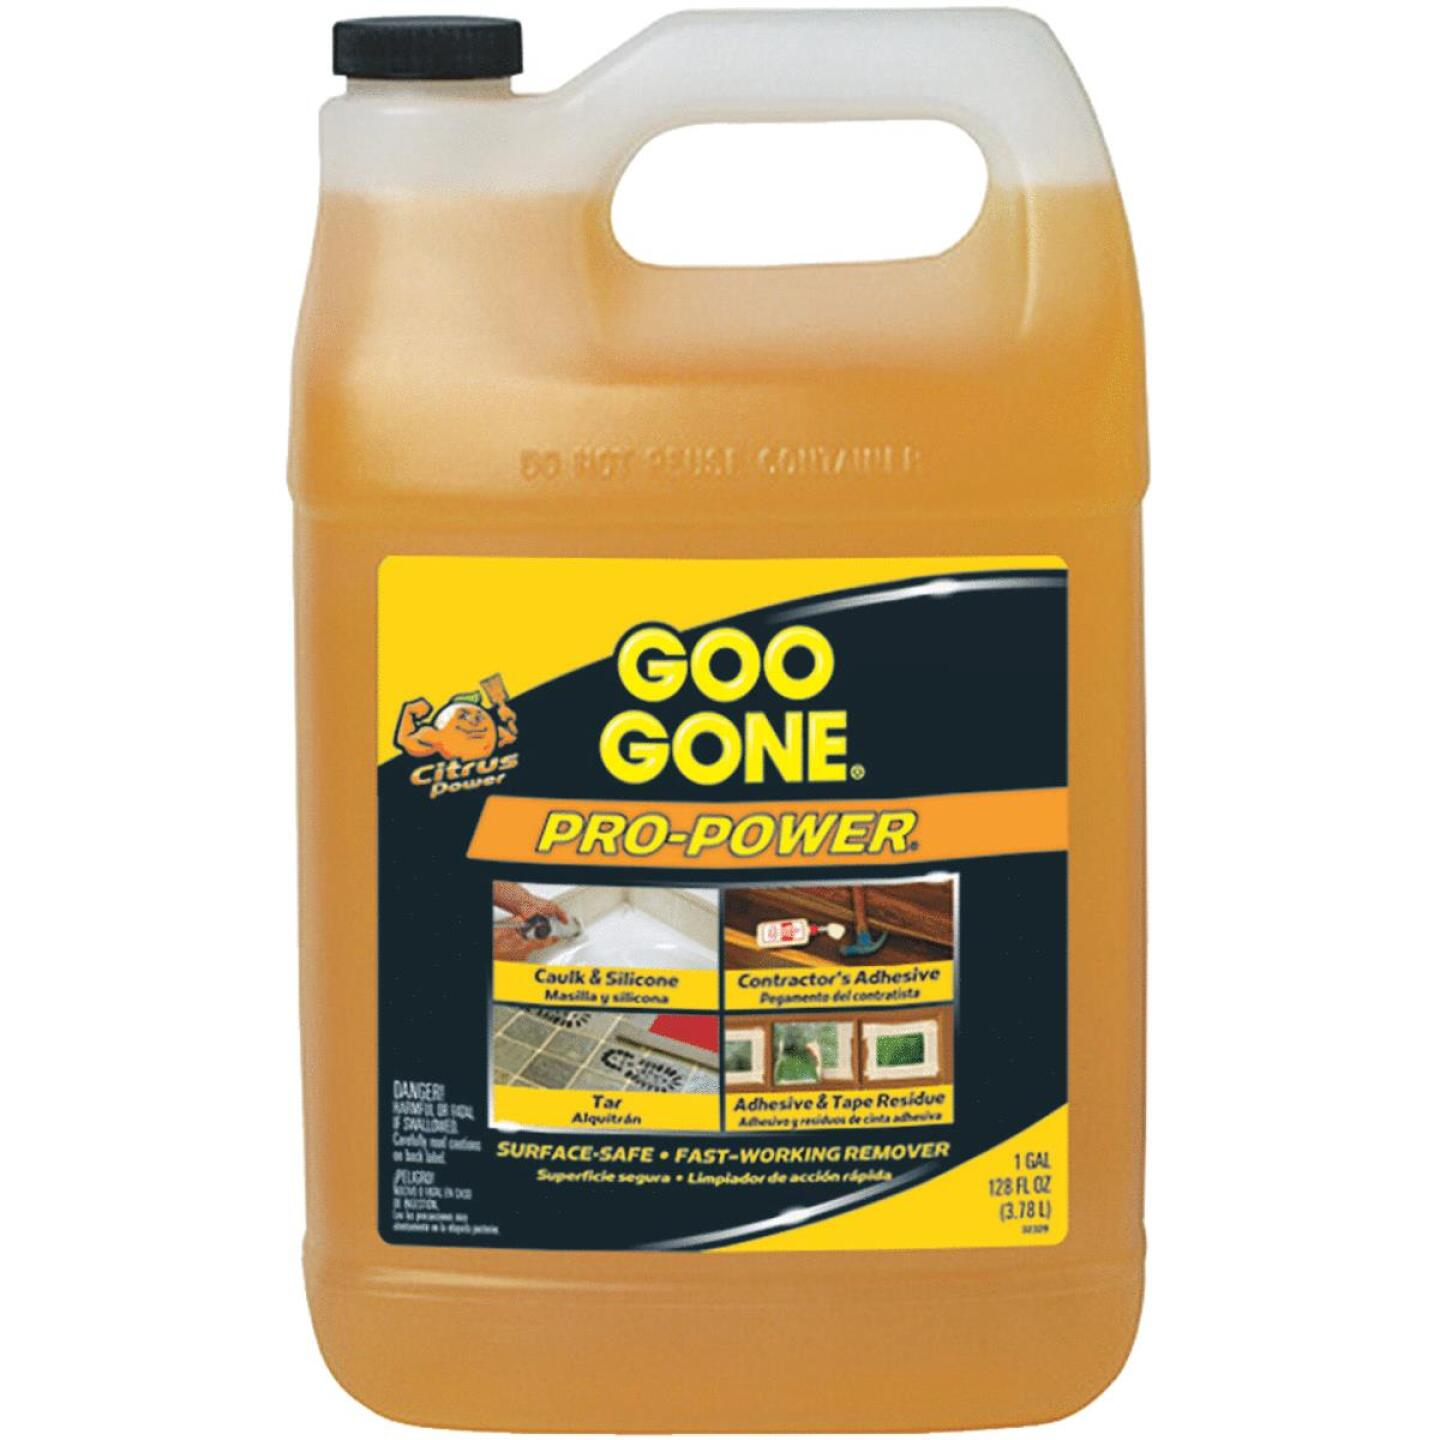 Goo Gone 1 Gal. Pro-Power Adhesive Remover Image 328